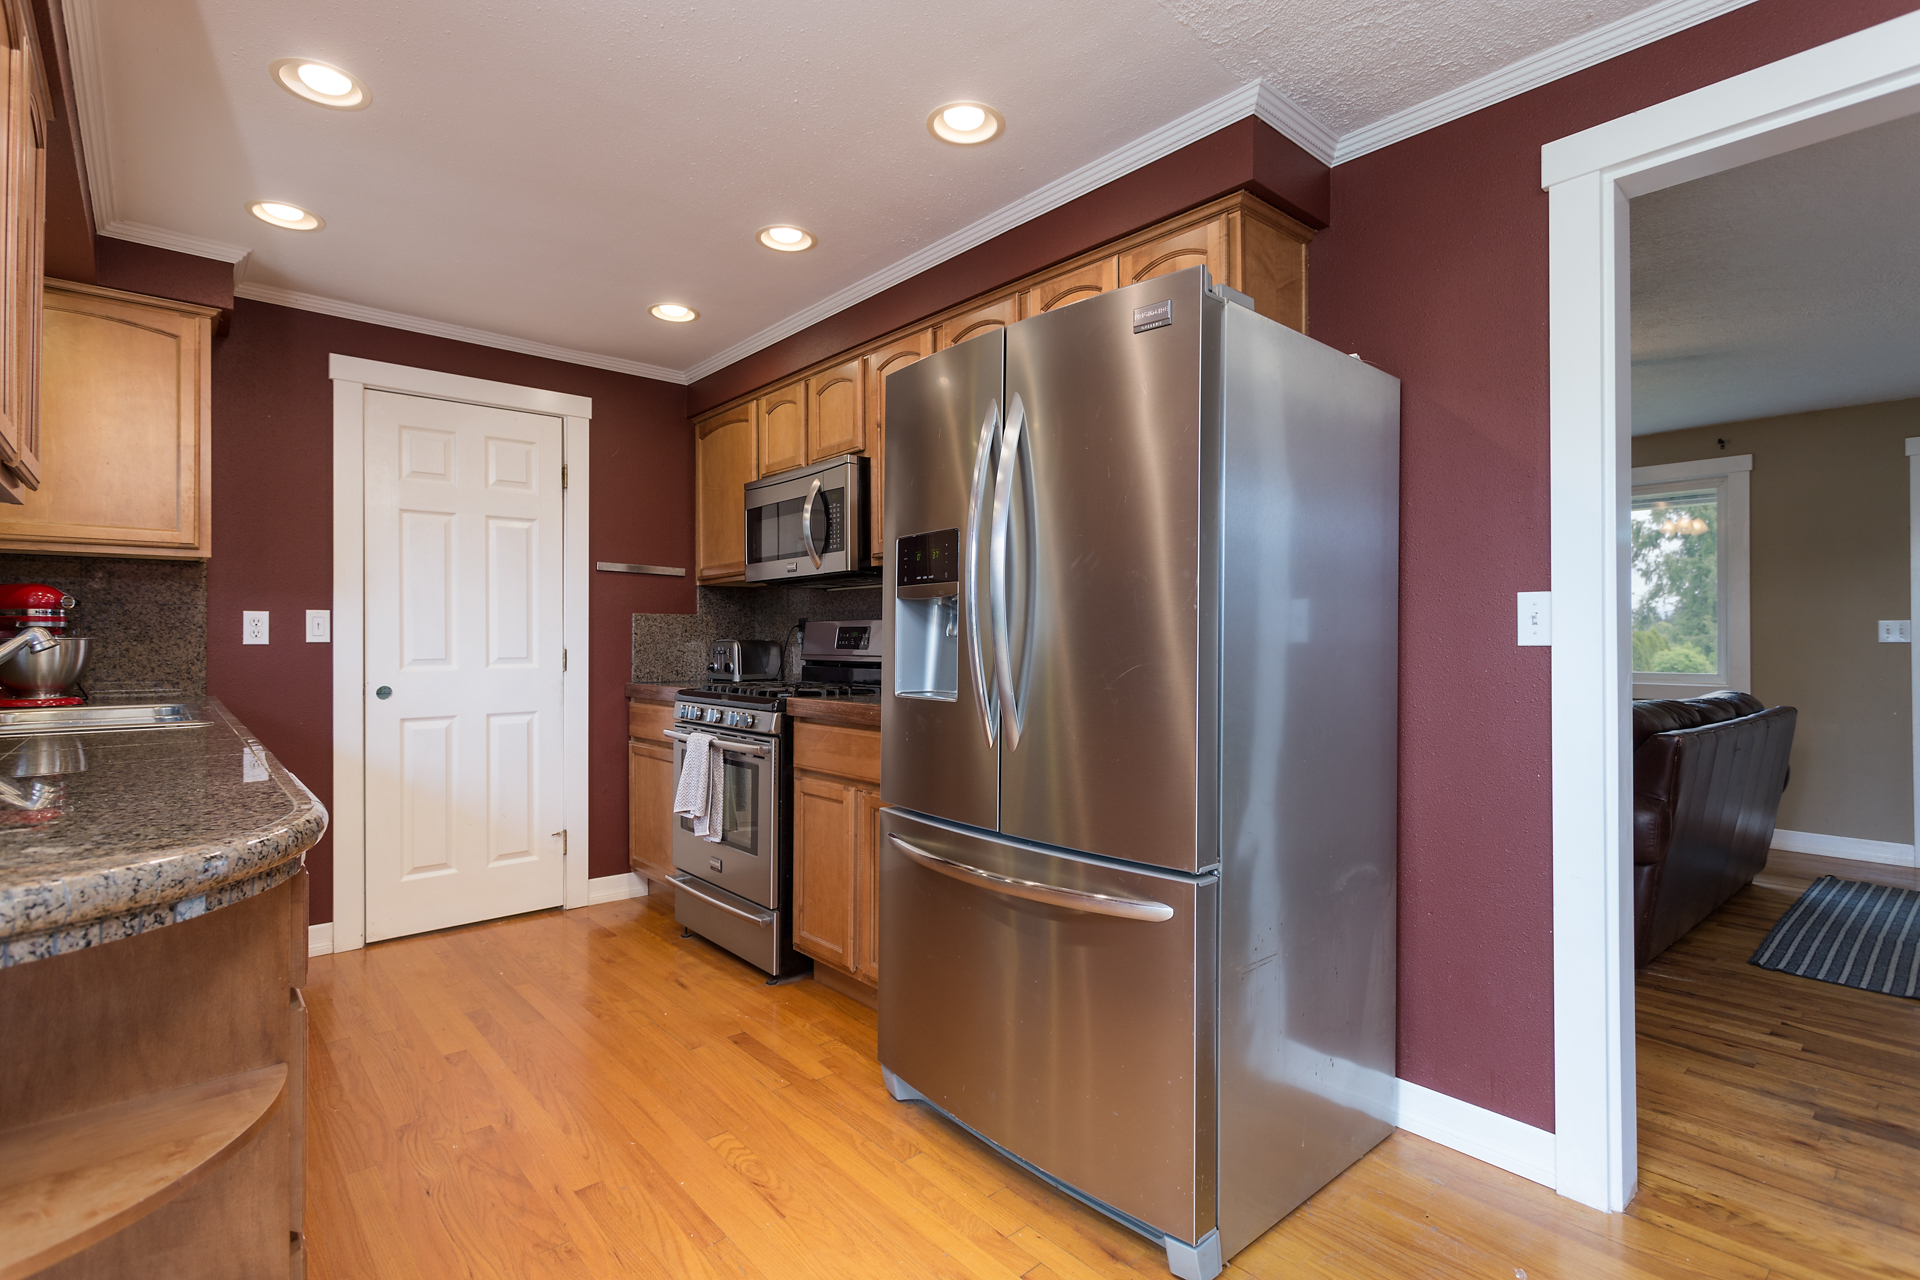 Remodeled kitchen with granite counters and stainless steel appliances.